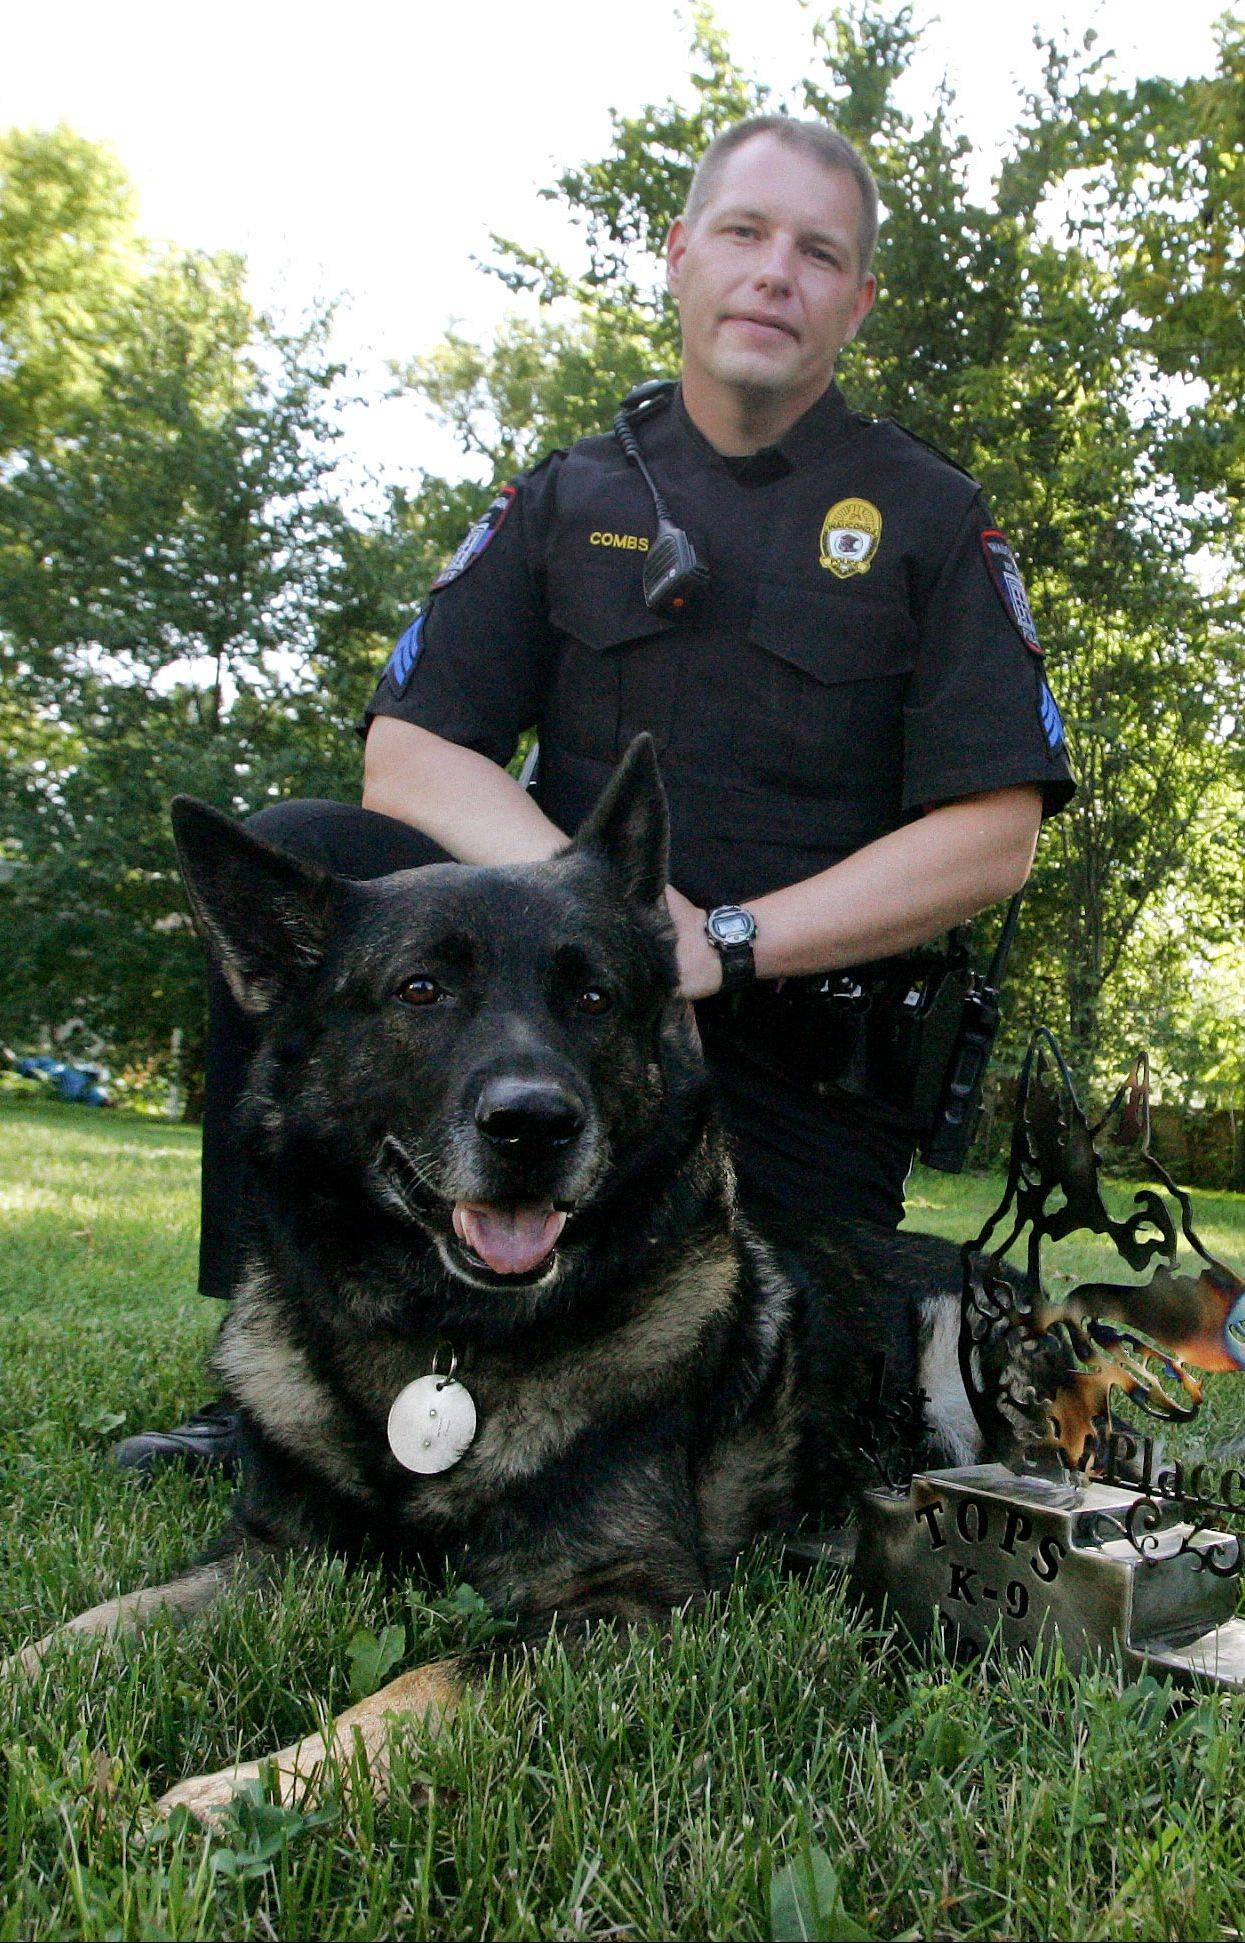 Wauconda's award-winning police dog, Maxx, to retire in May